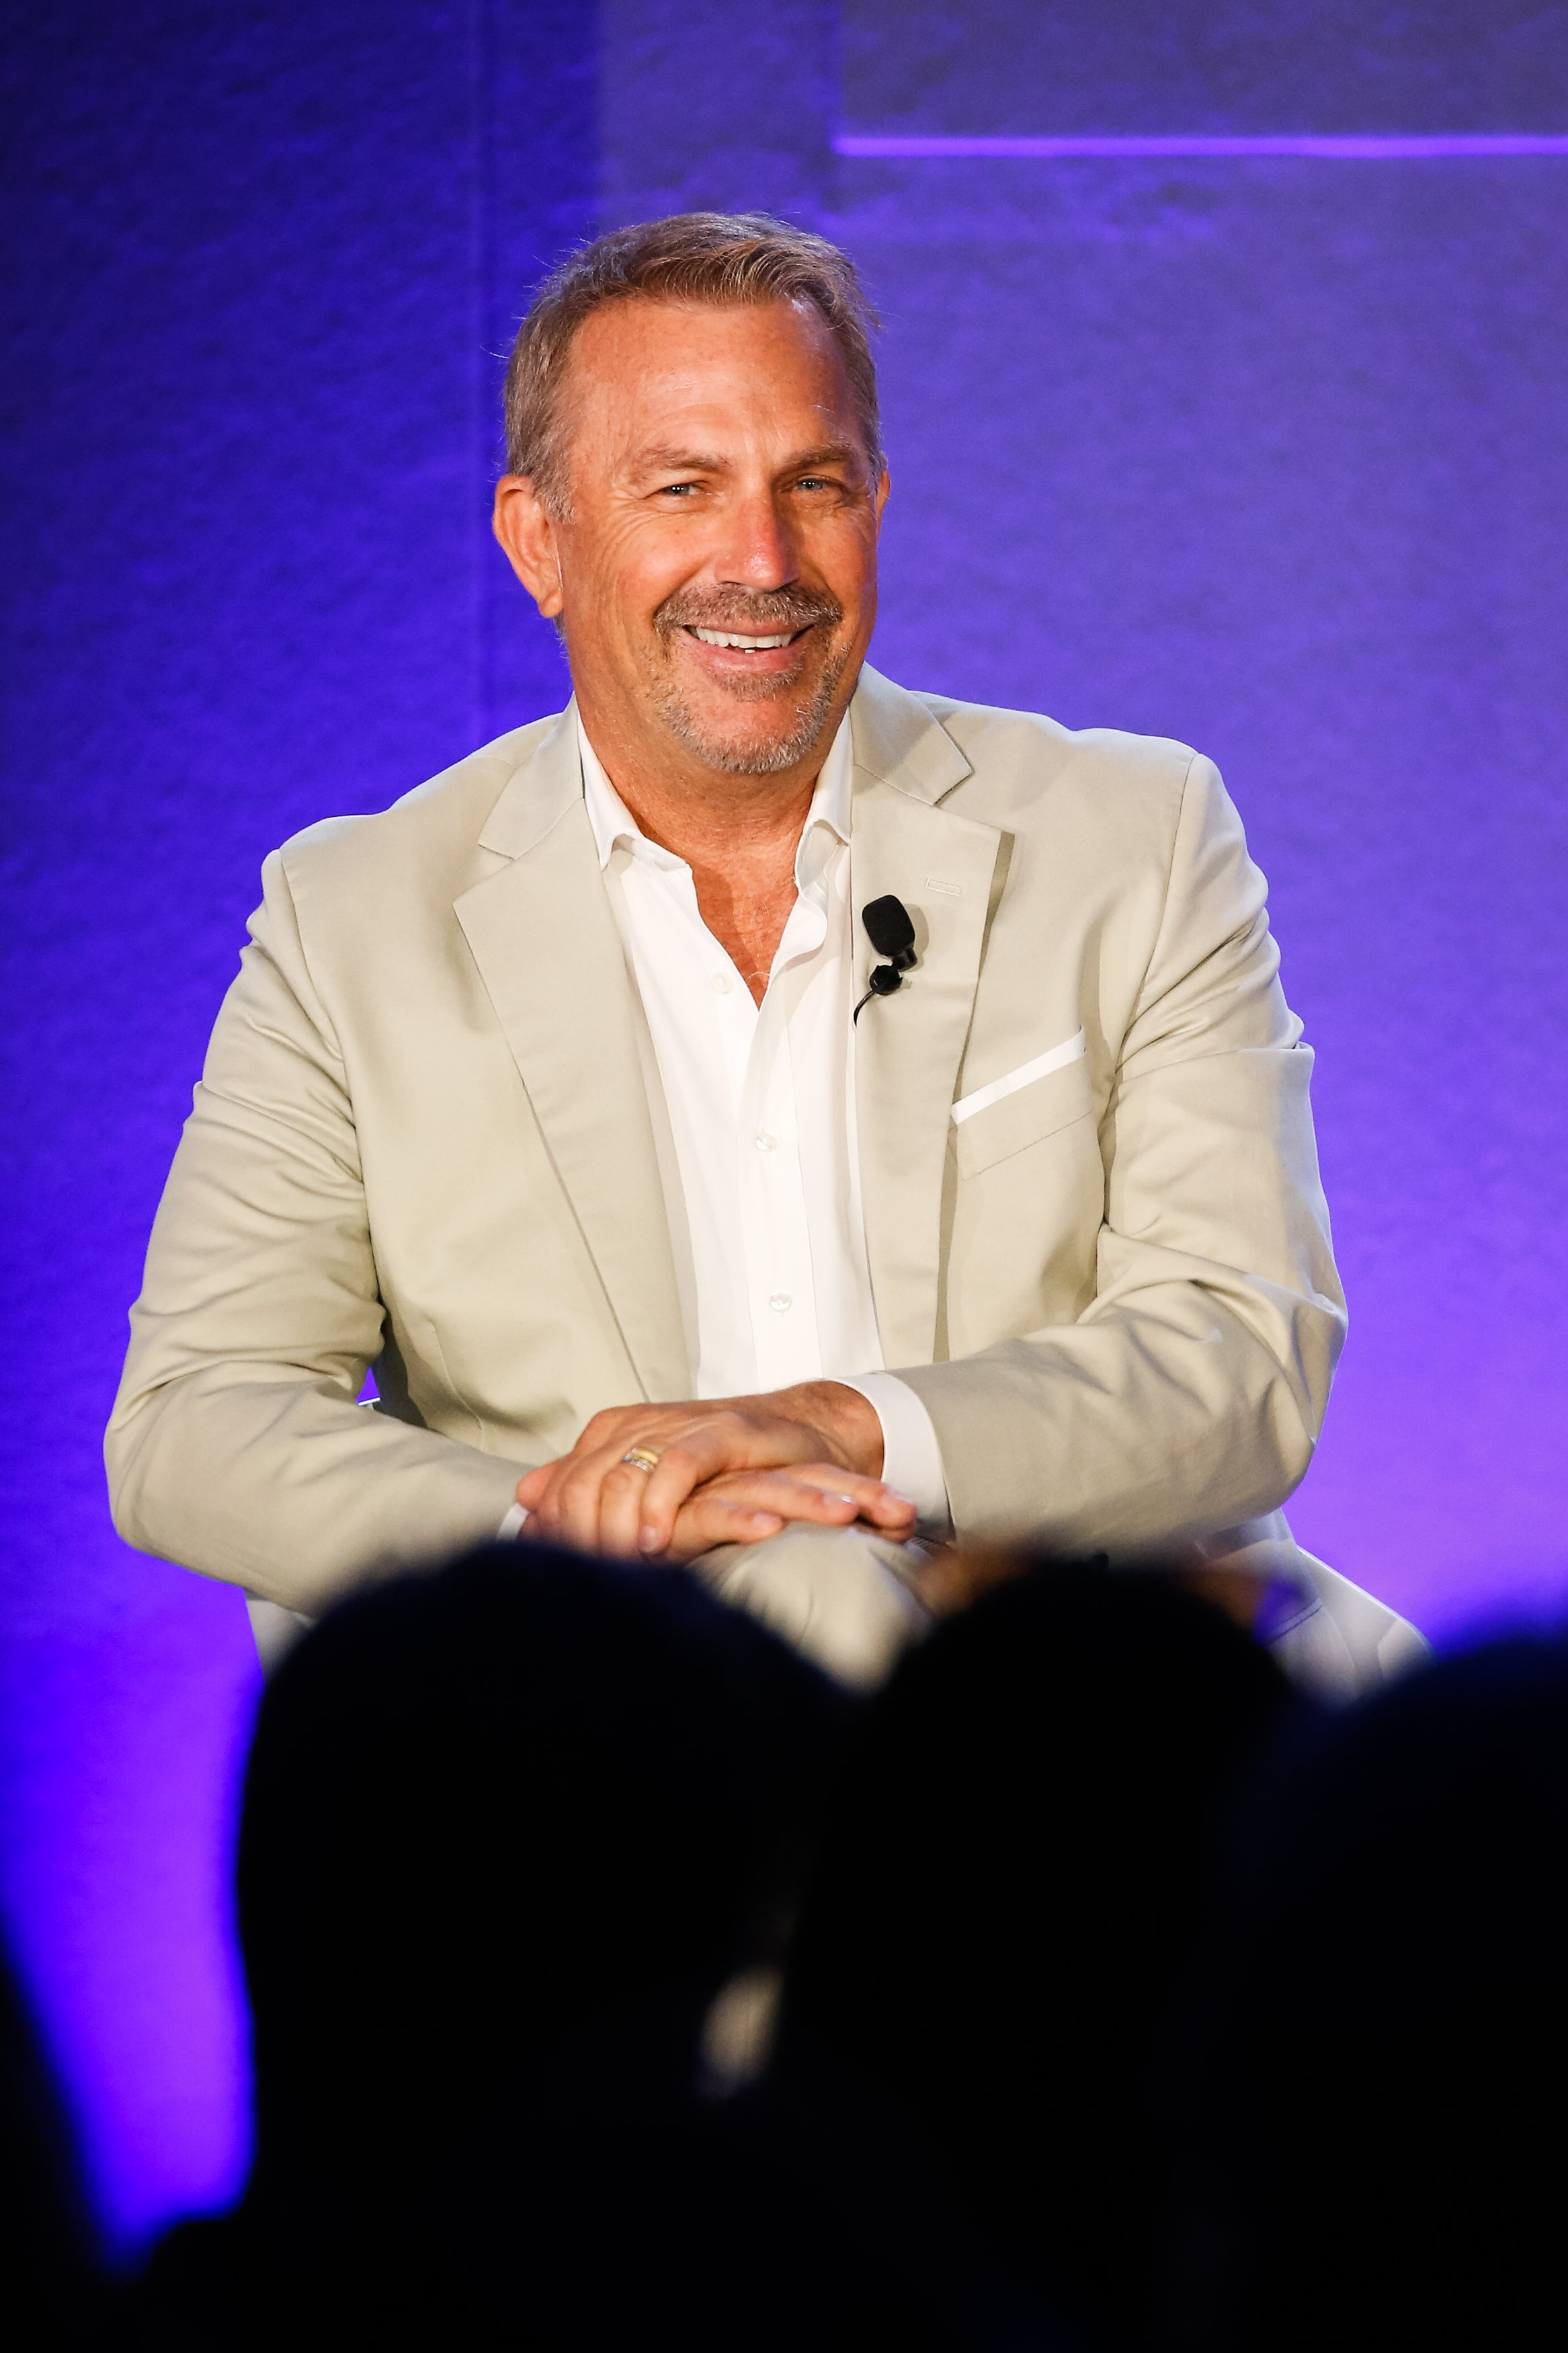 Kevin Costner at a panel during the Cannes Lions Festival 2018 on June 21, 2018 | Photo: GettyImages